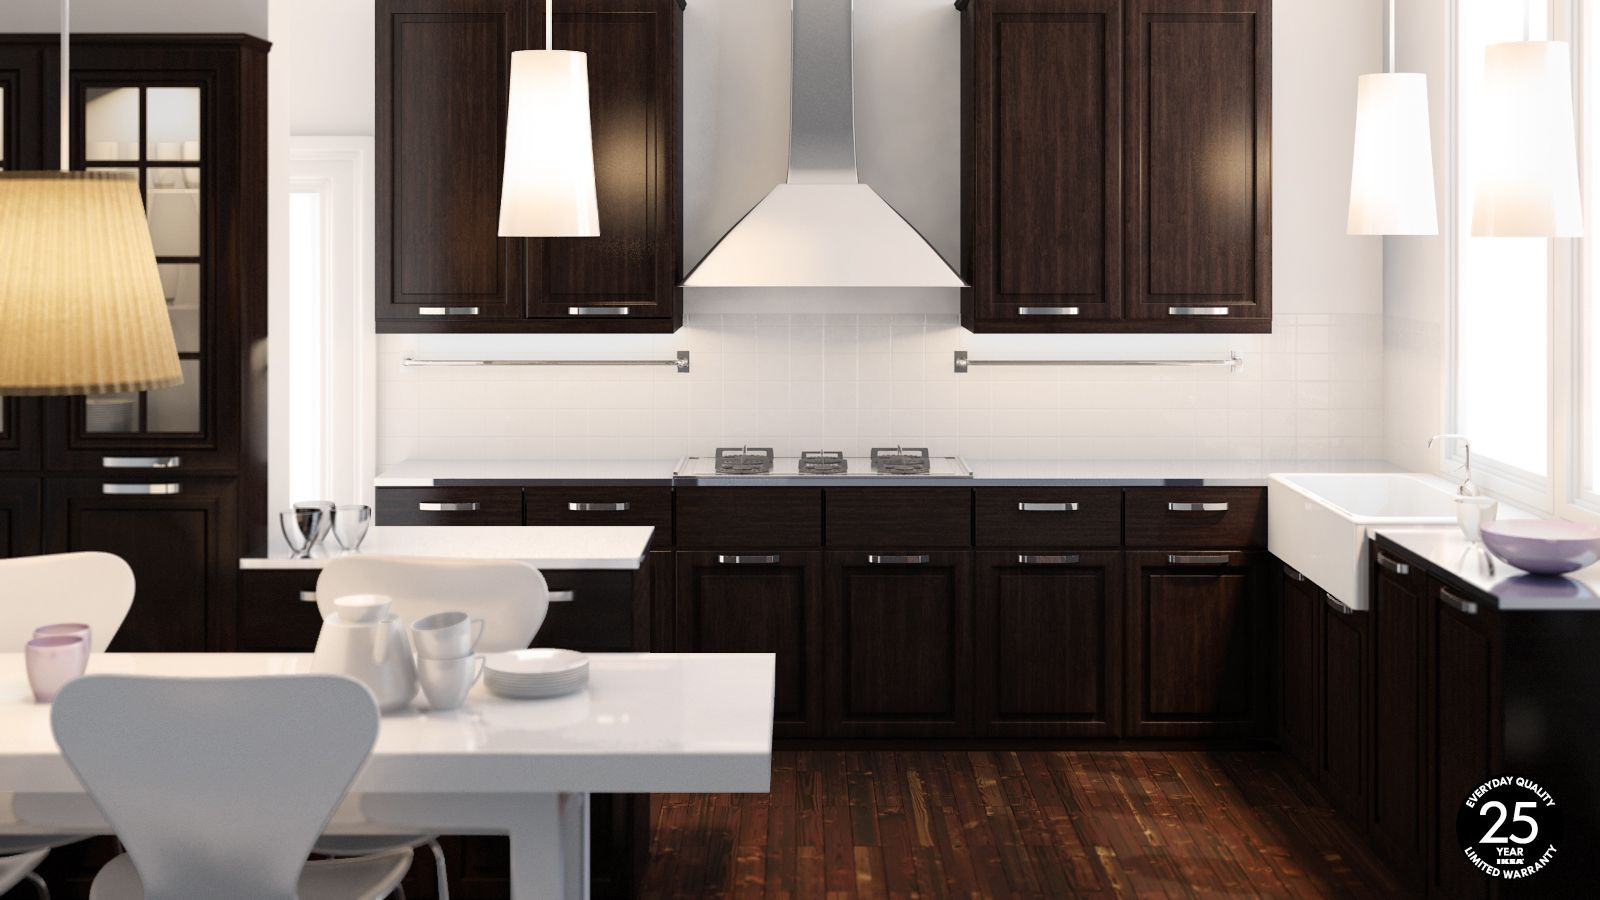 Modern Kitchen Dark Cabinets White Kitchen Dark Tile Floors Kitchen Superb Modern Ikea